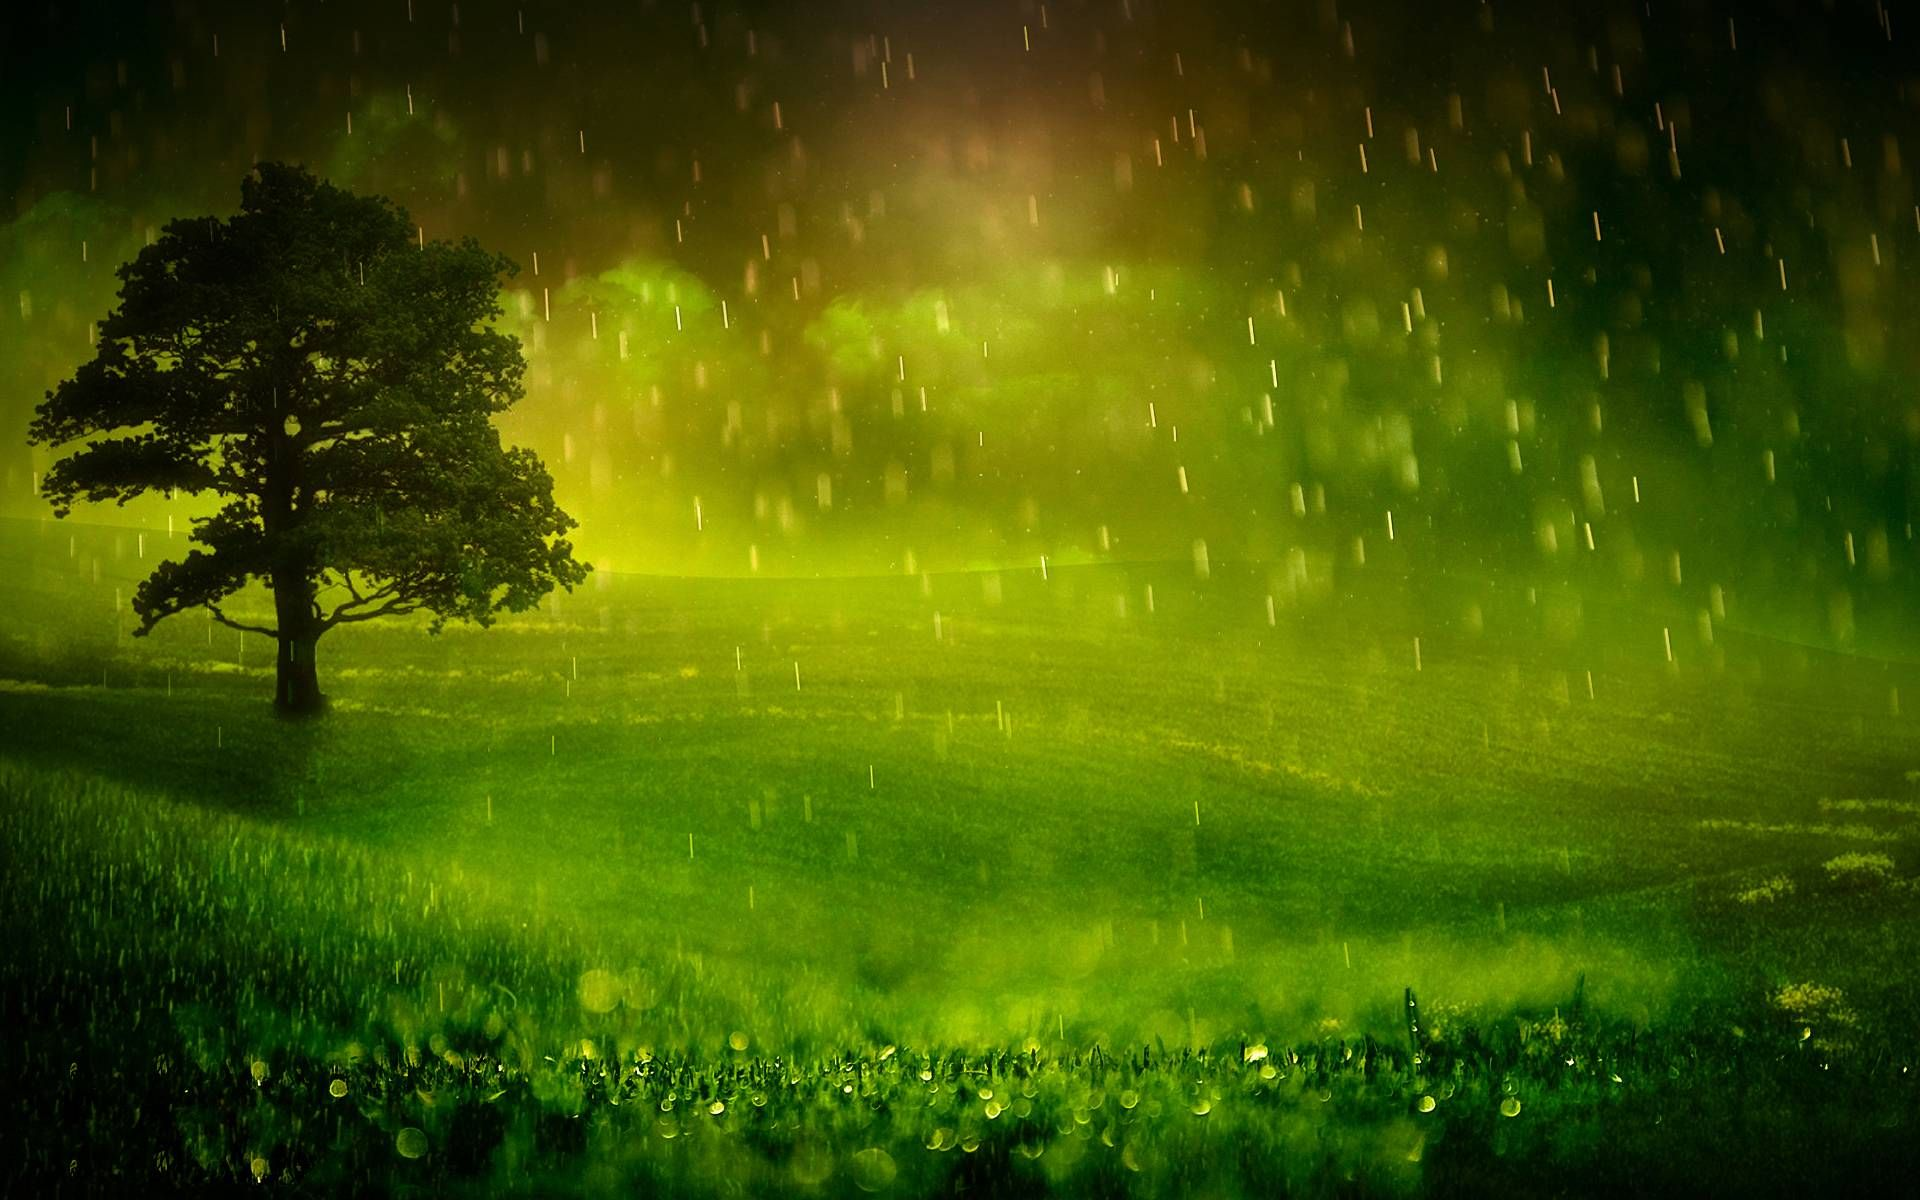 Download free rainy wallpapers for your mobile phone top rated download free rainy wallpapers for your mobile phone top rated 1280720 rainy images wallpapers voltagebd Images